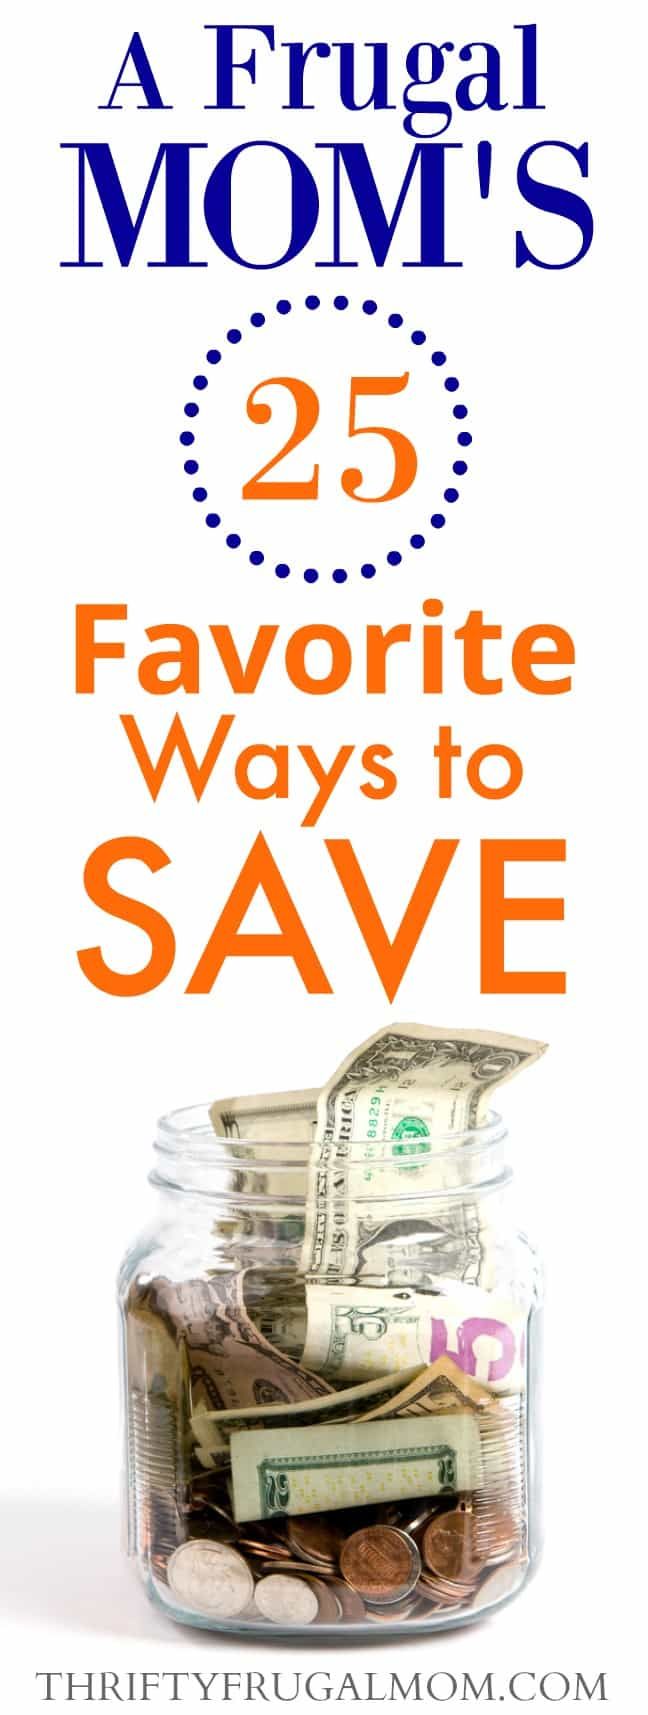 Frugal Mom's Favorite Ways to Save